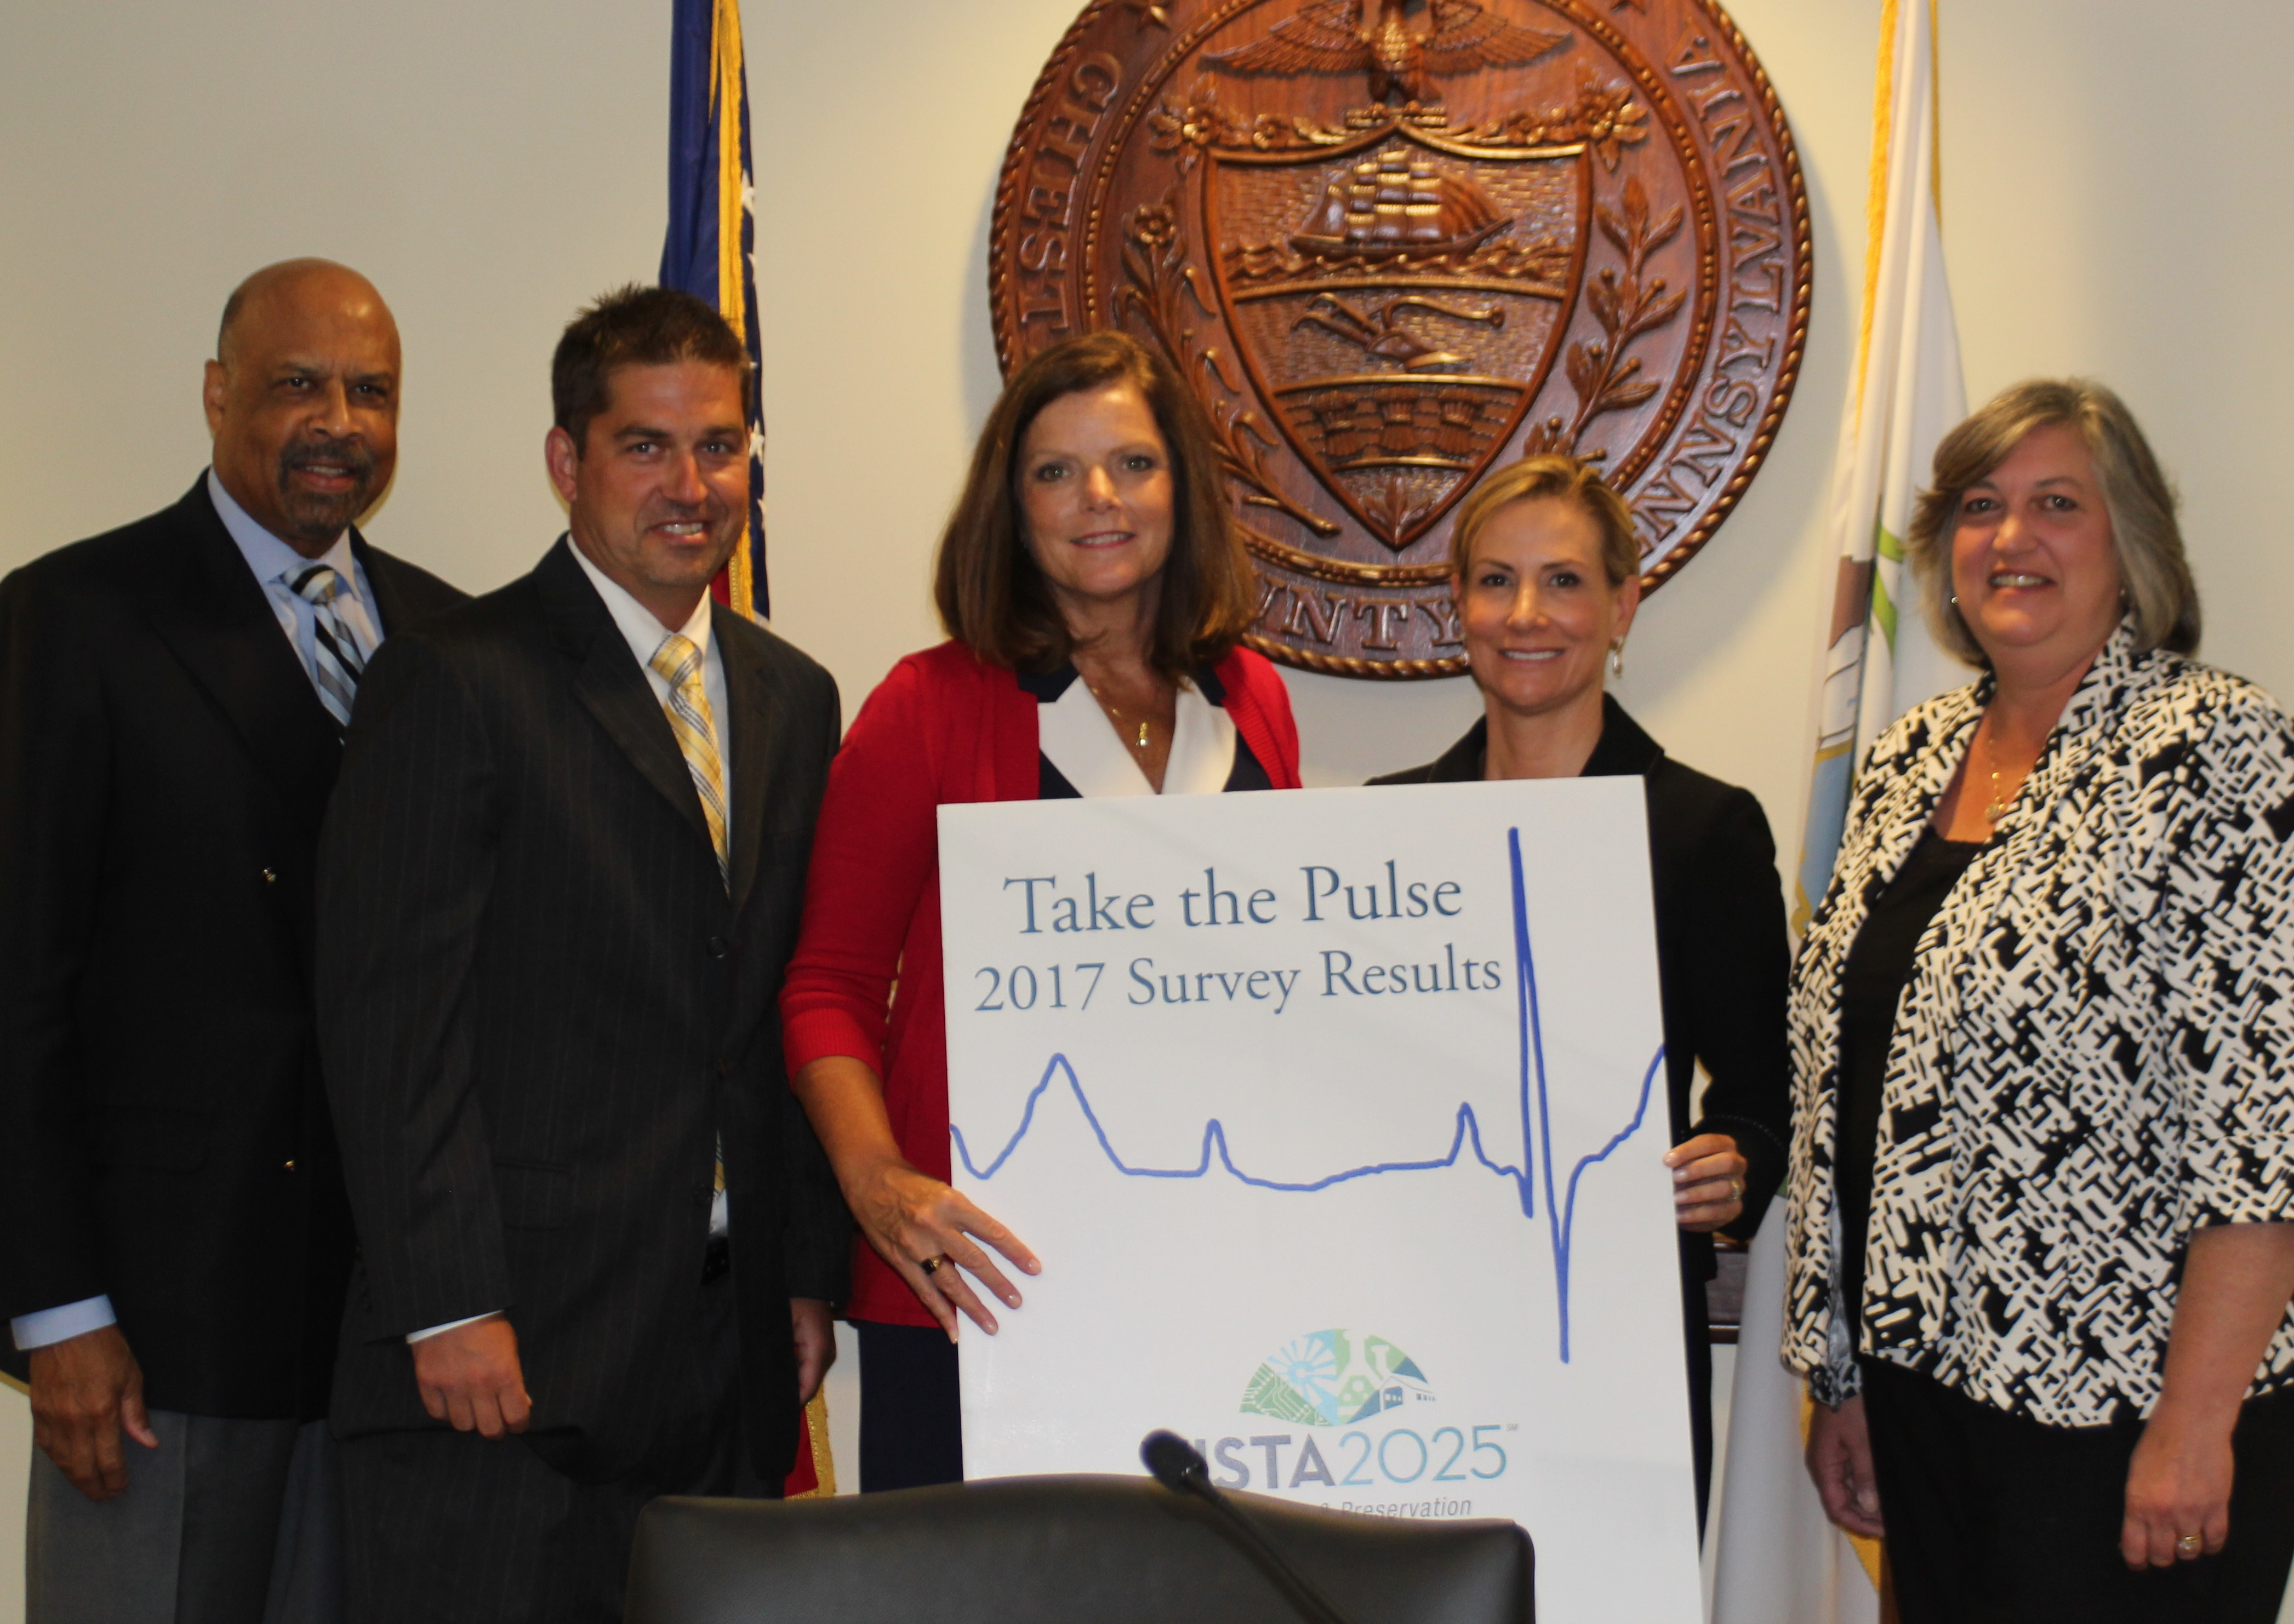 Take the Pulse Survey Results Released; Optimism Abounds for Local Businesses